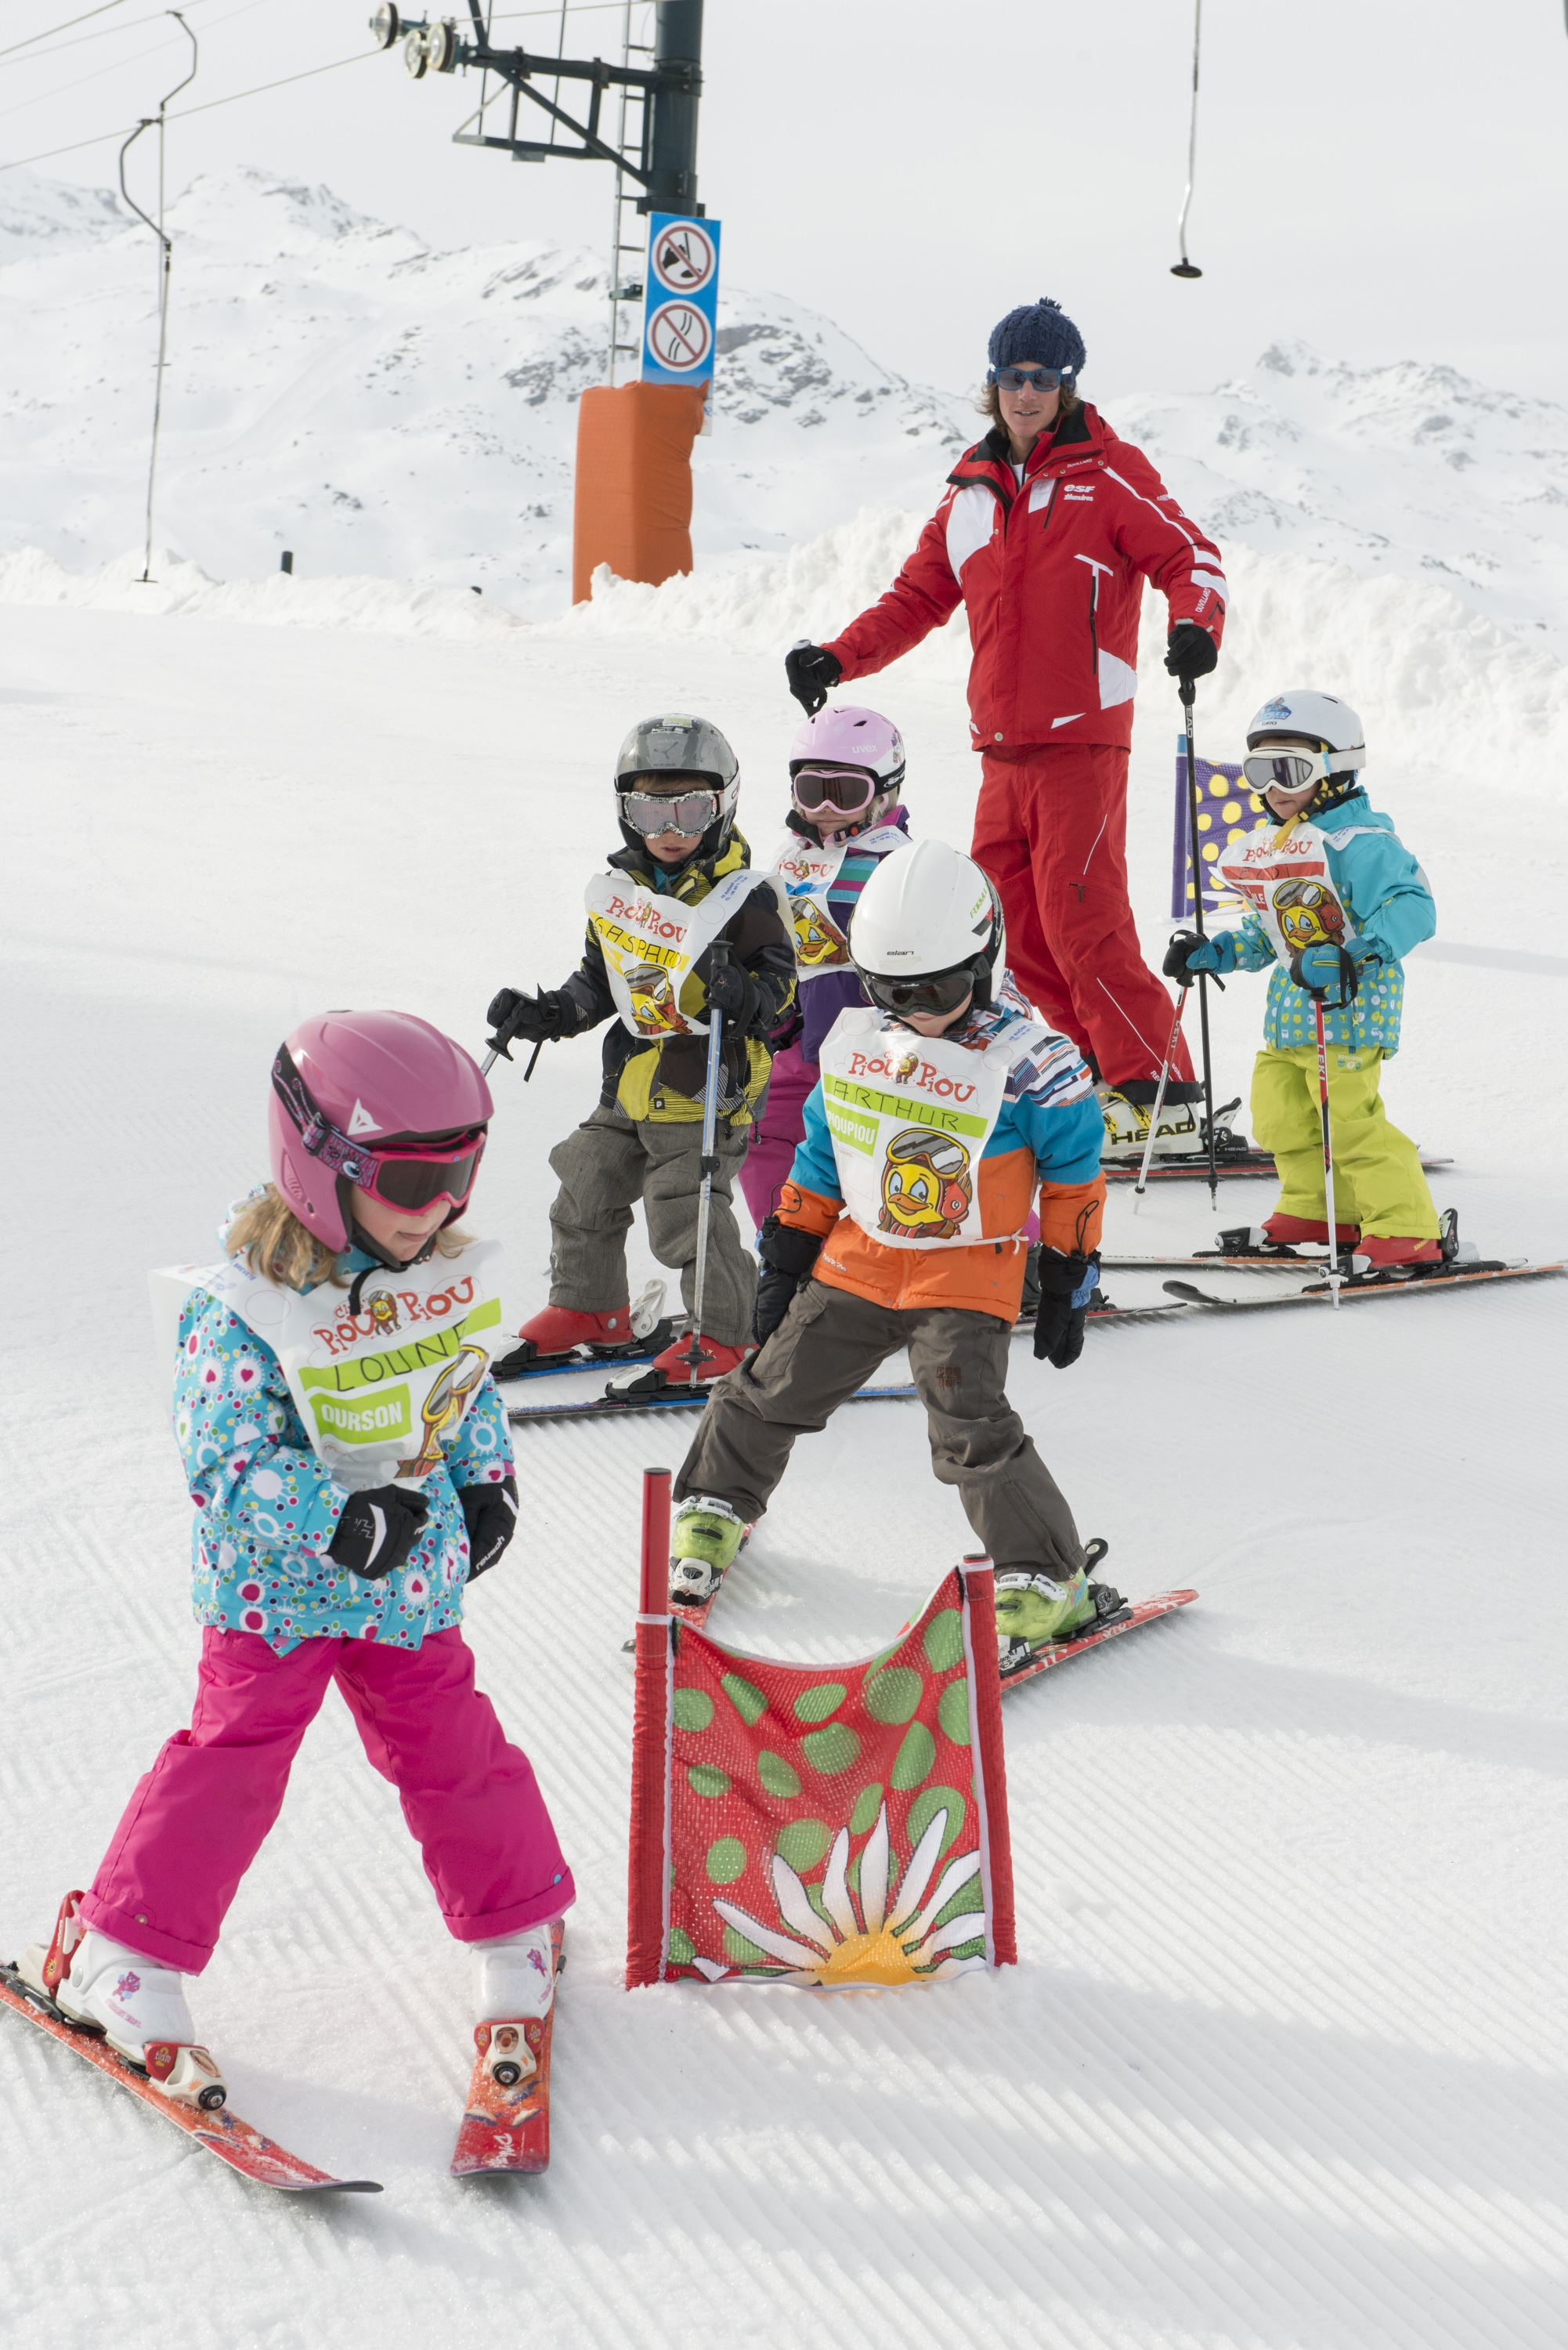 Group Ski lessons 6 mornings, 3 years old children, St Martin only, on request